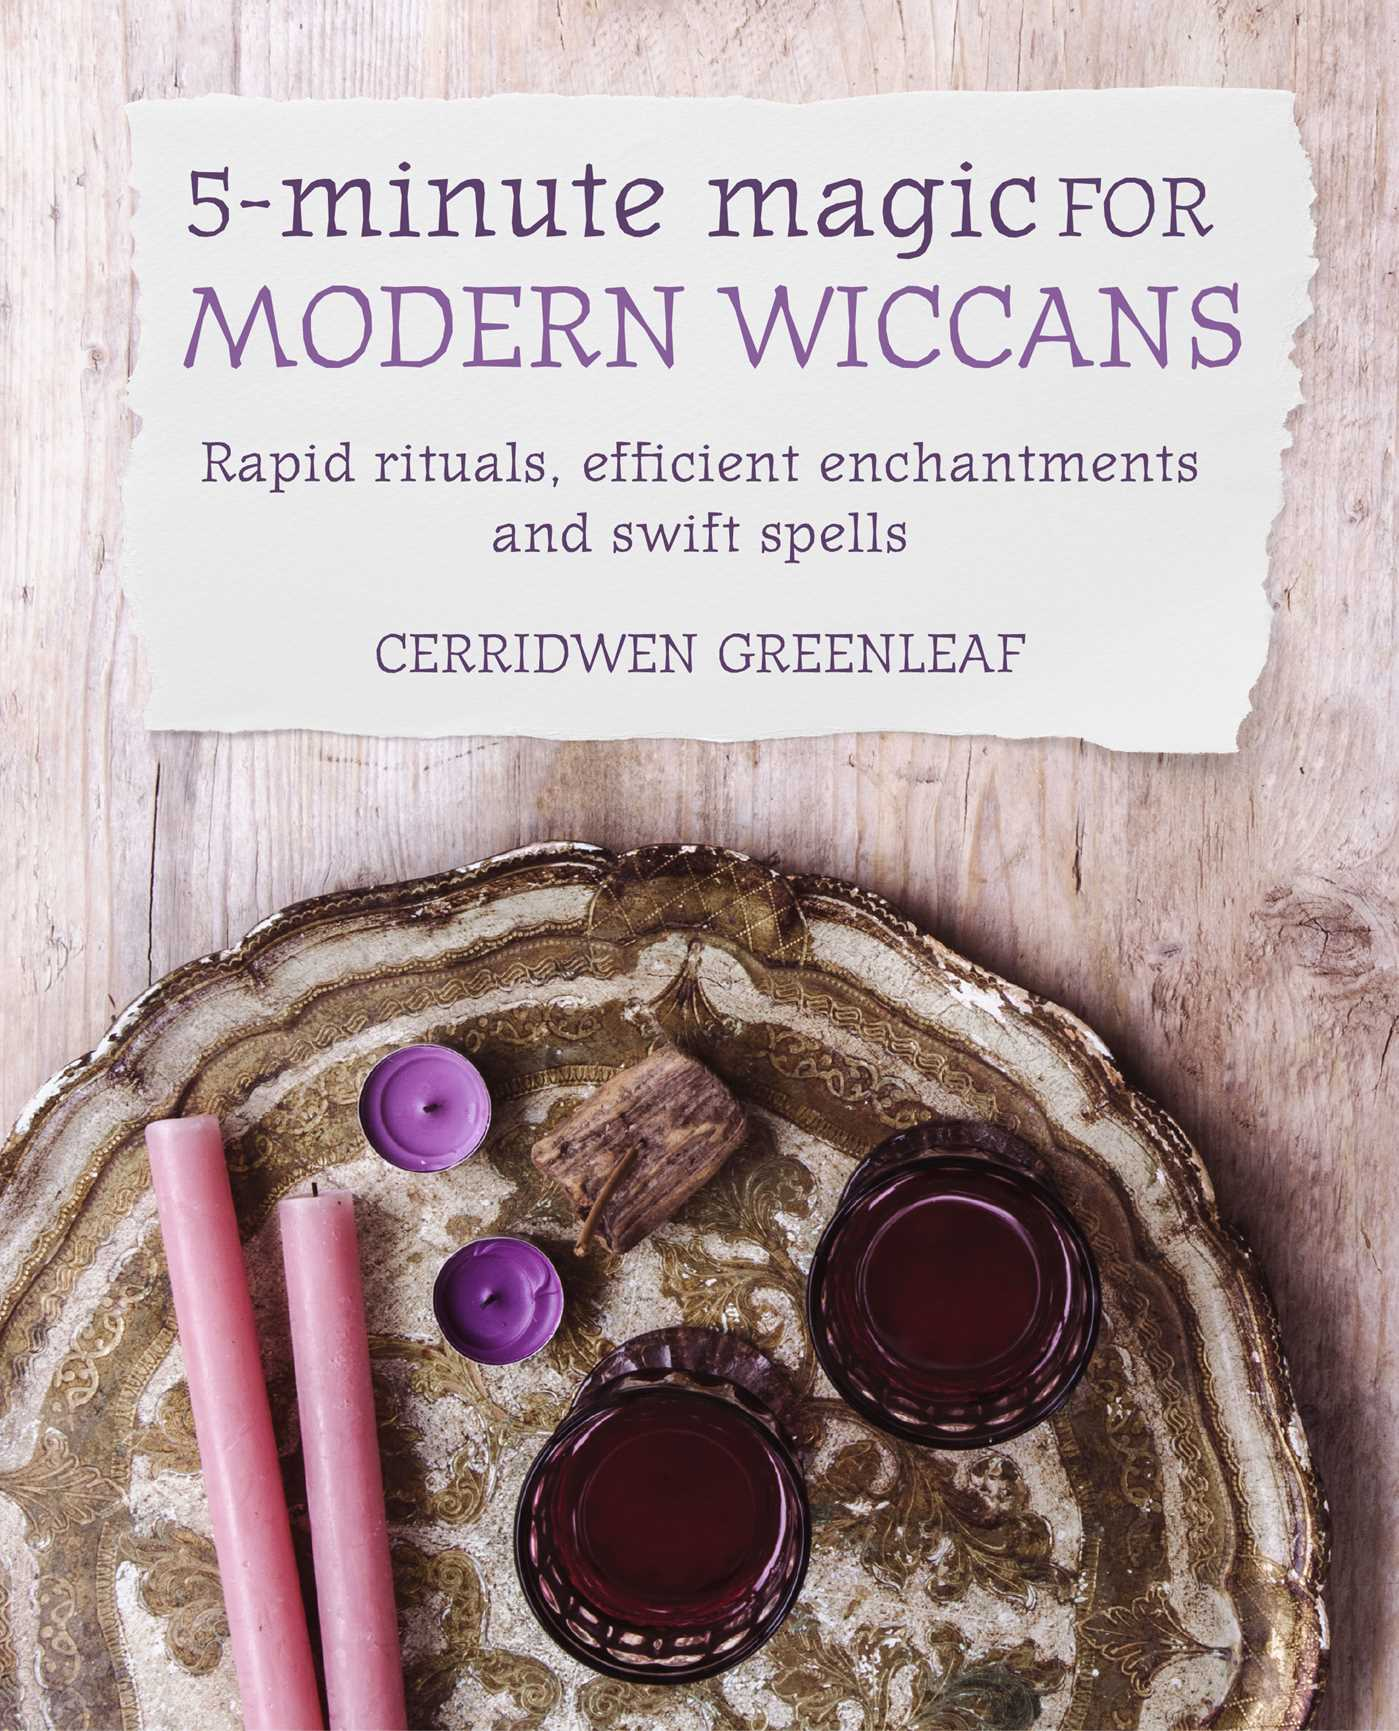 5-Minute Magic for Modern Wiccans | Book by Cerridwen